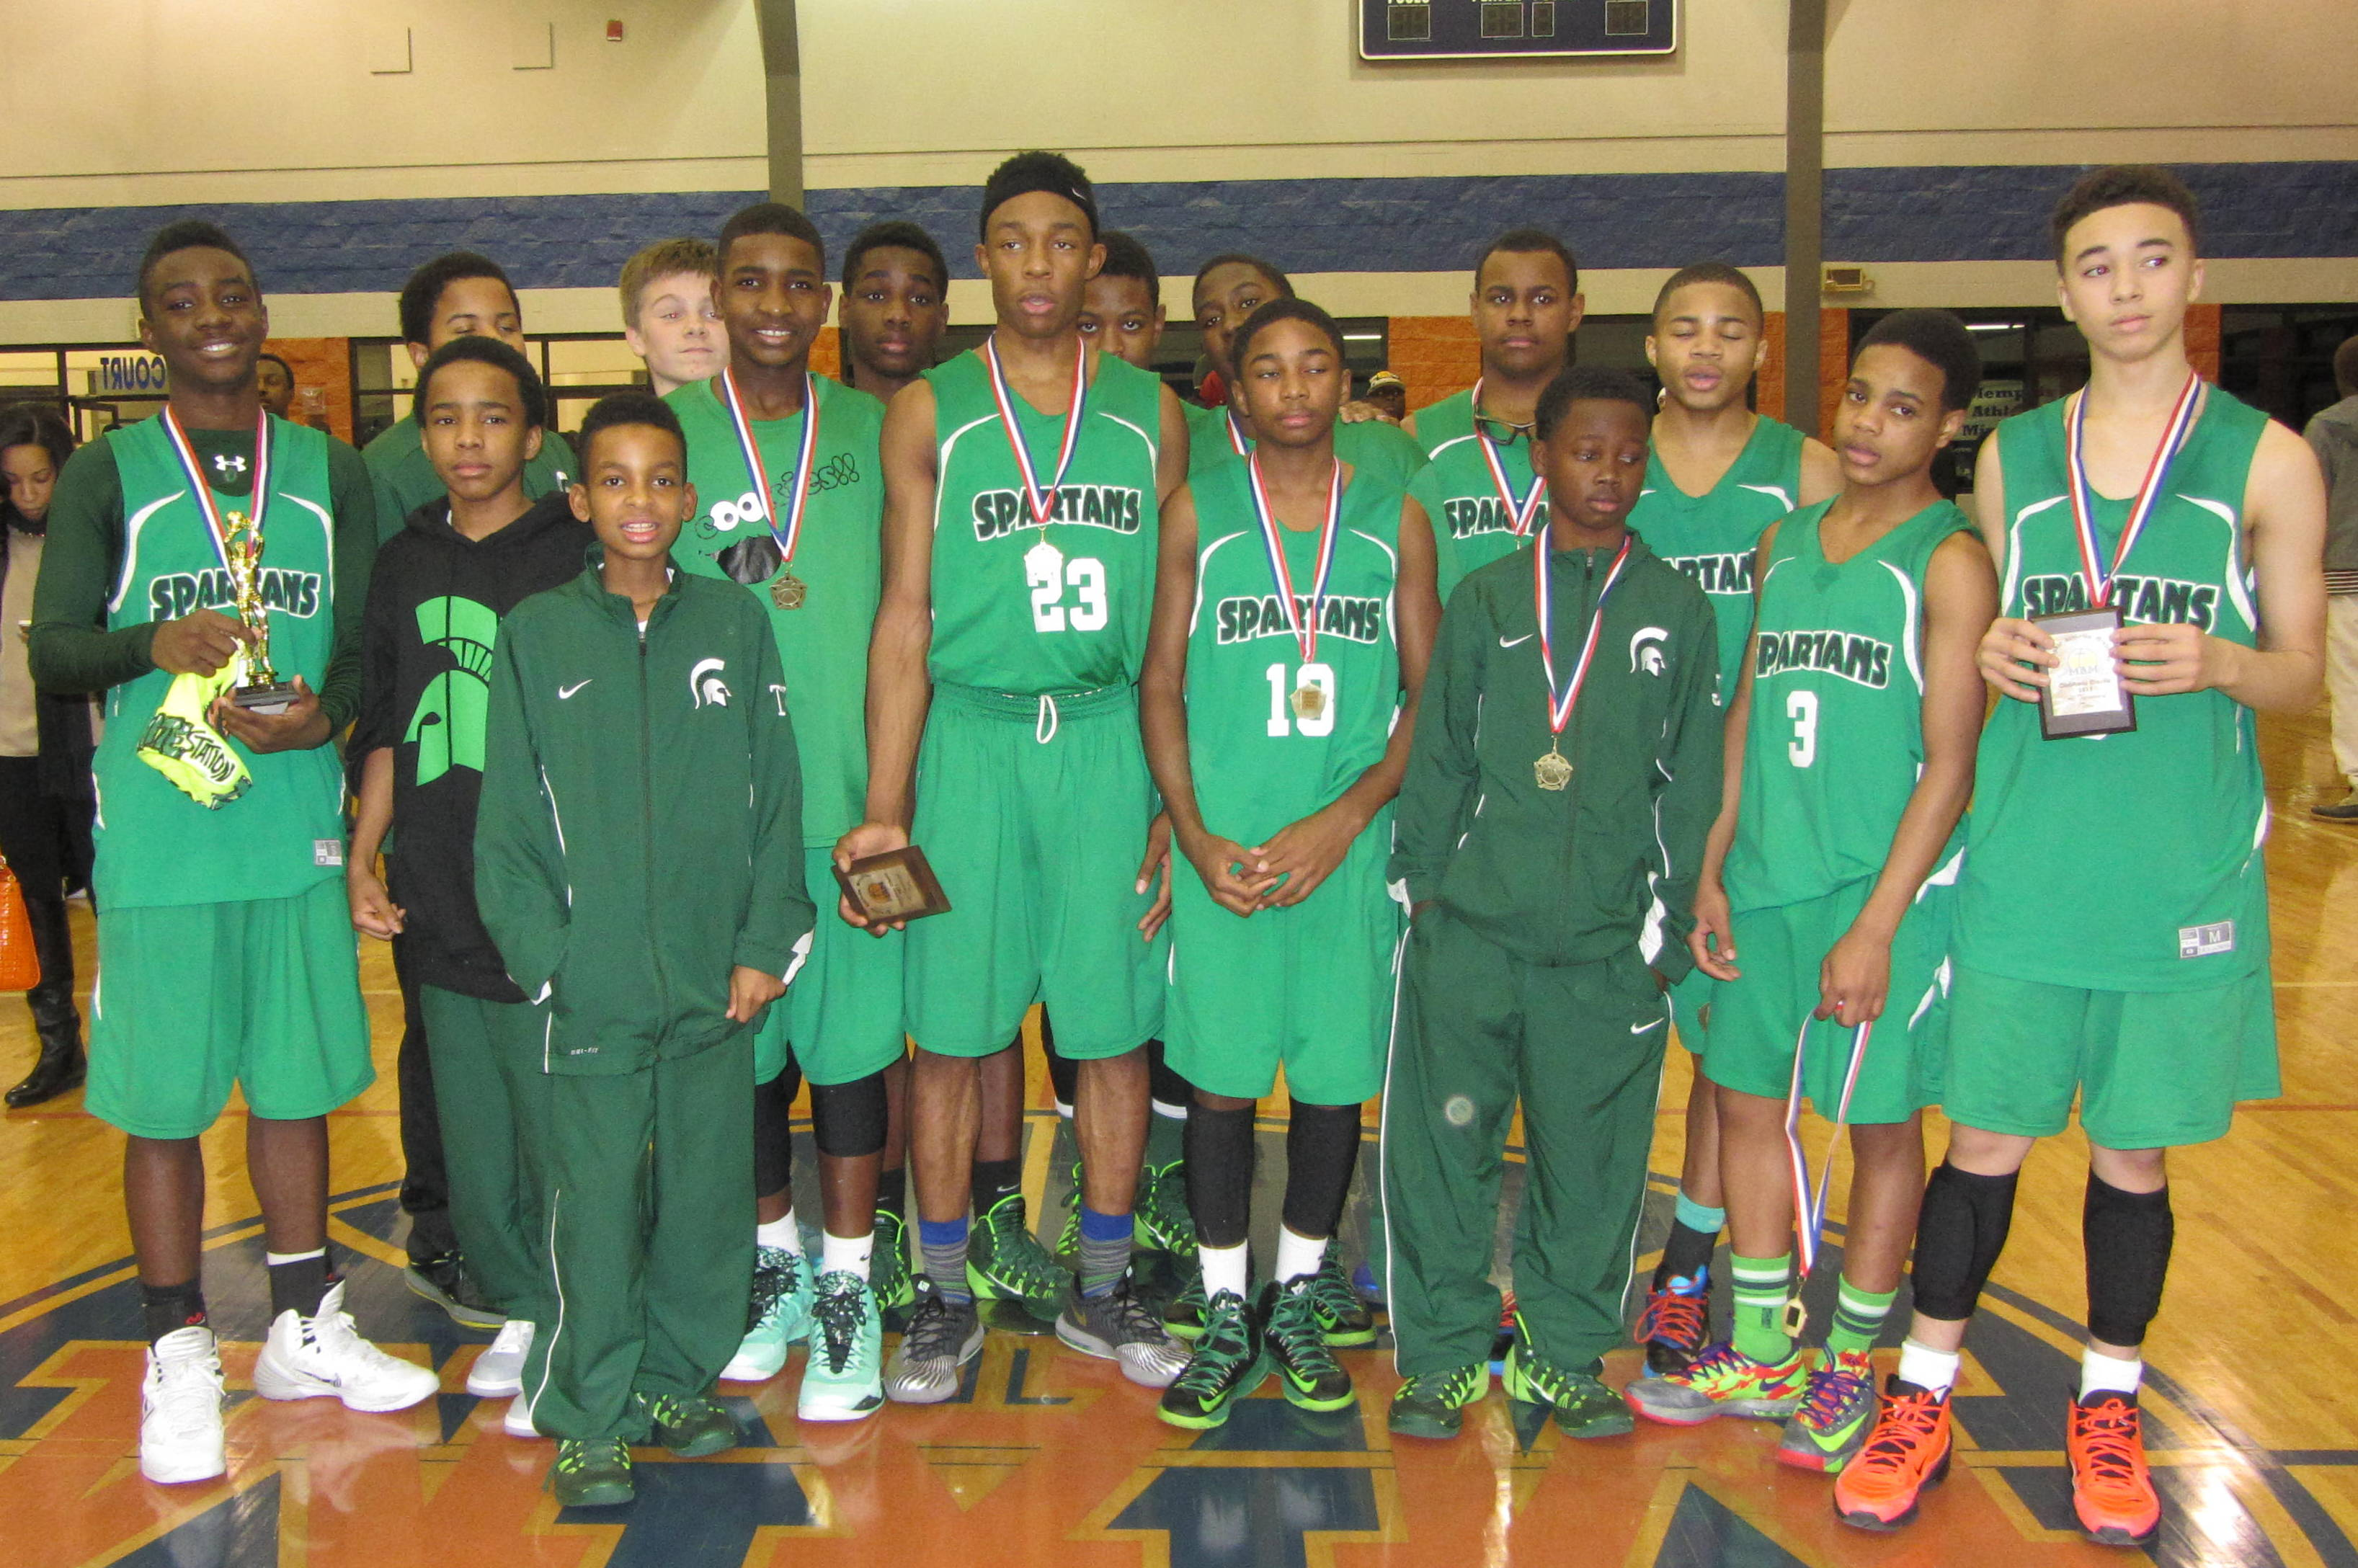 MAM Annual Classic Brings Excitement to Youth Basketball